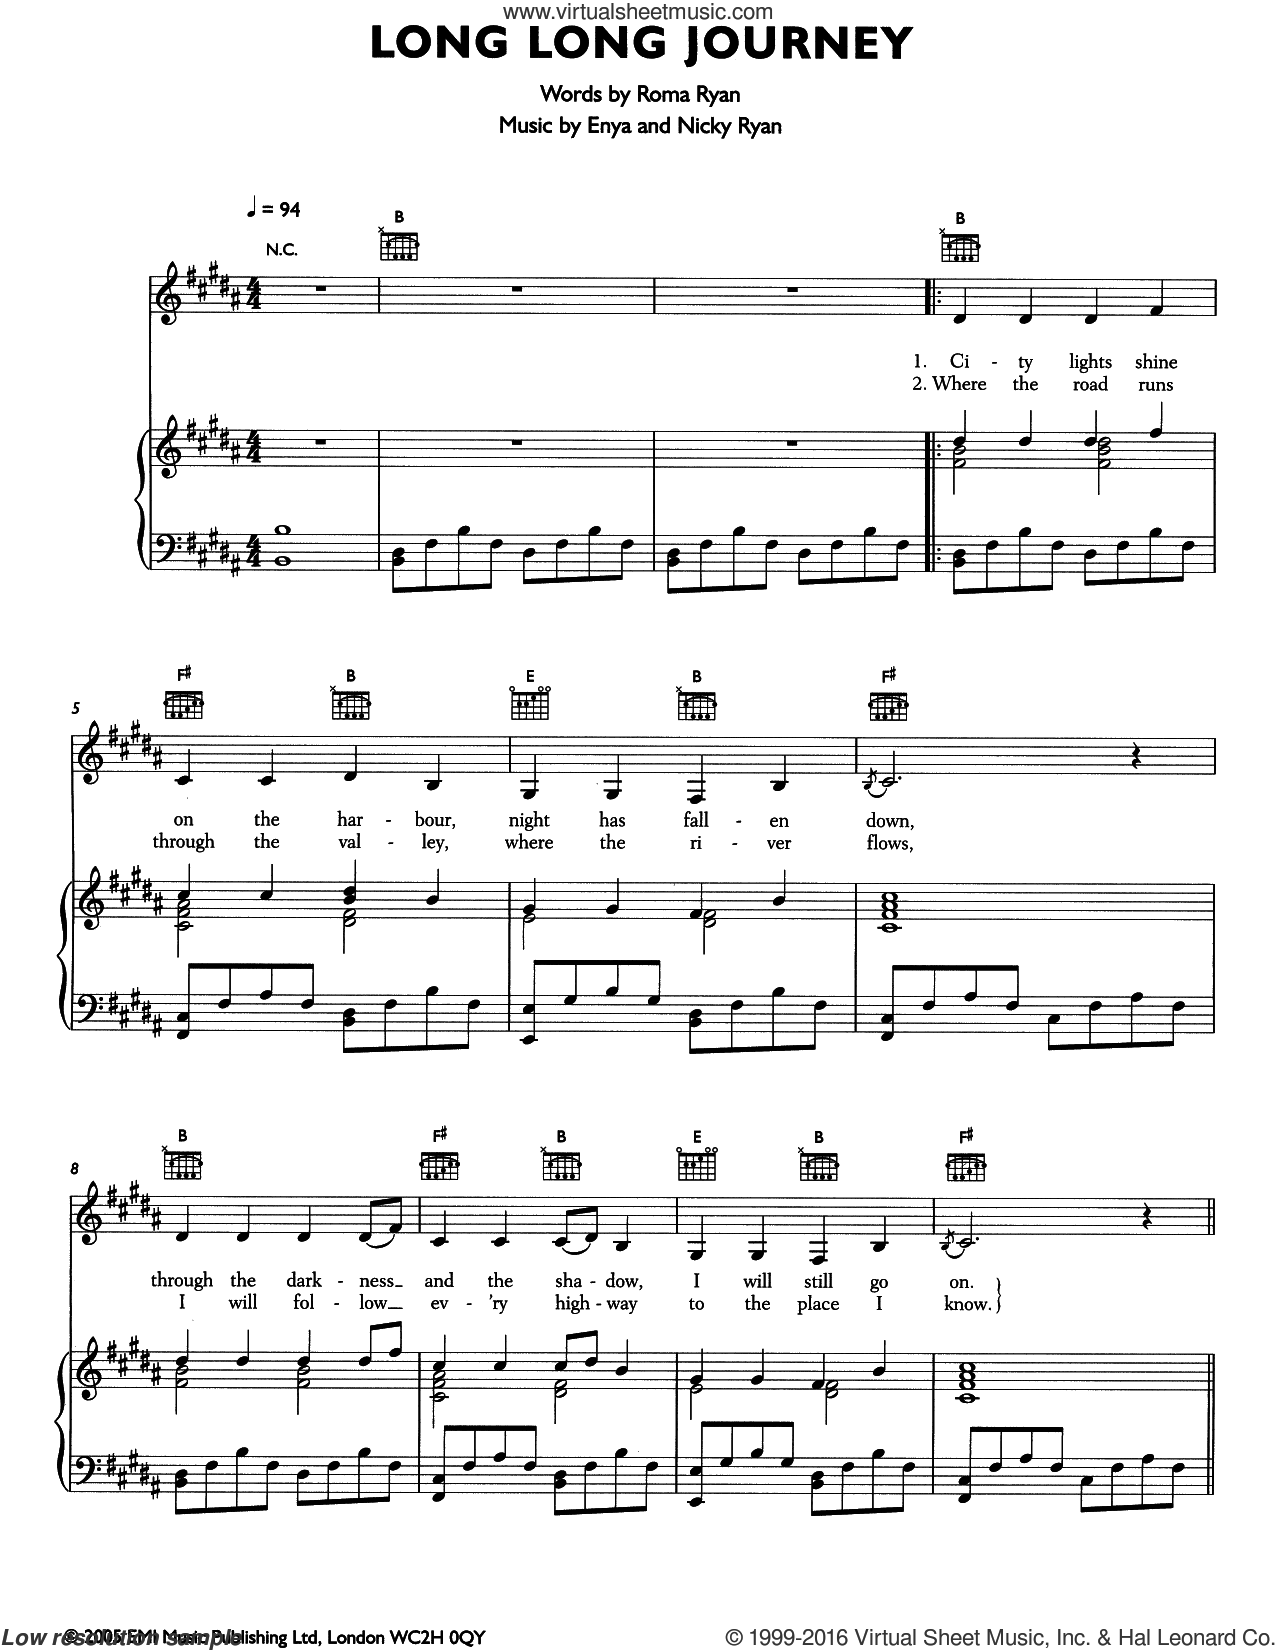 Long Long Journey sheet music for voice, piano or guitar by Roma Ryan, Enya and Nicky Ryan. Score Image Preview.